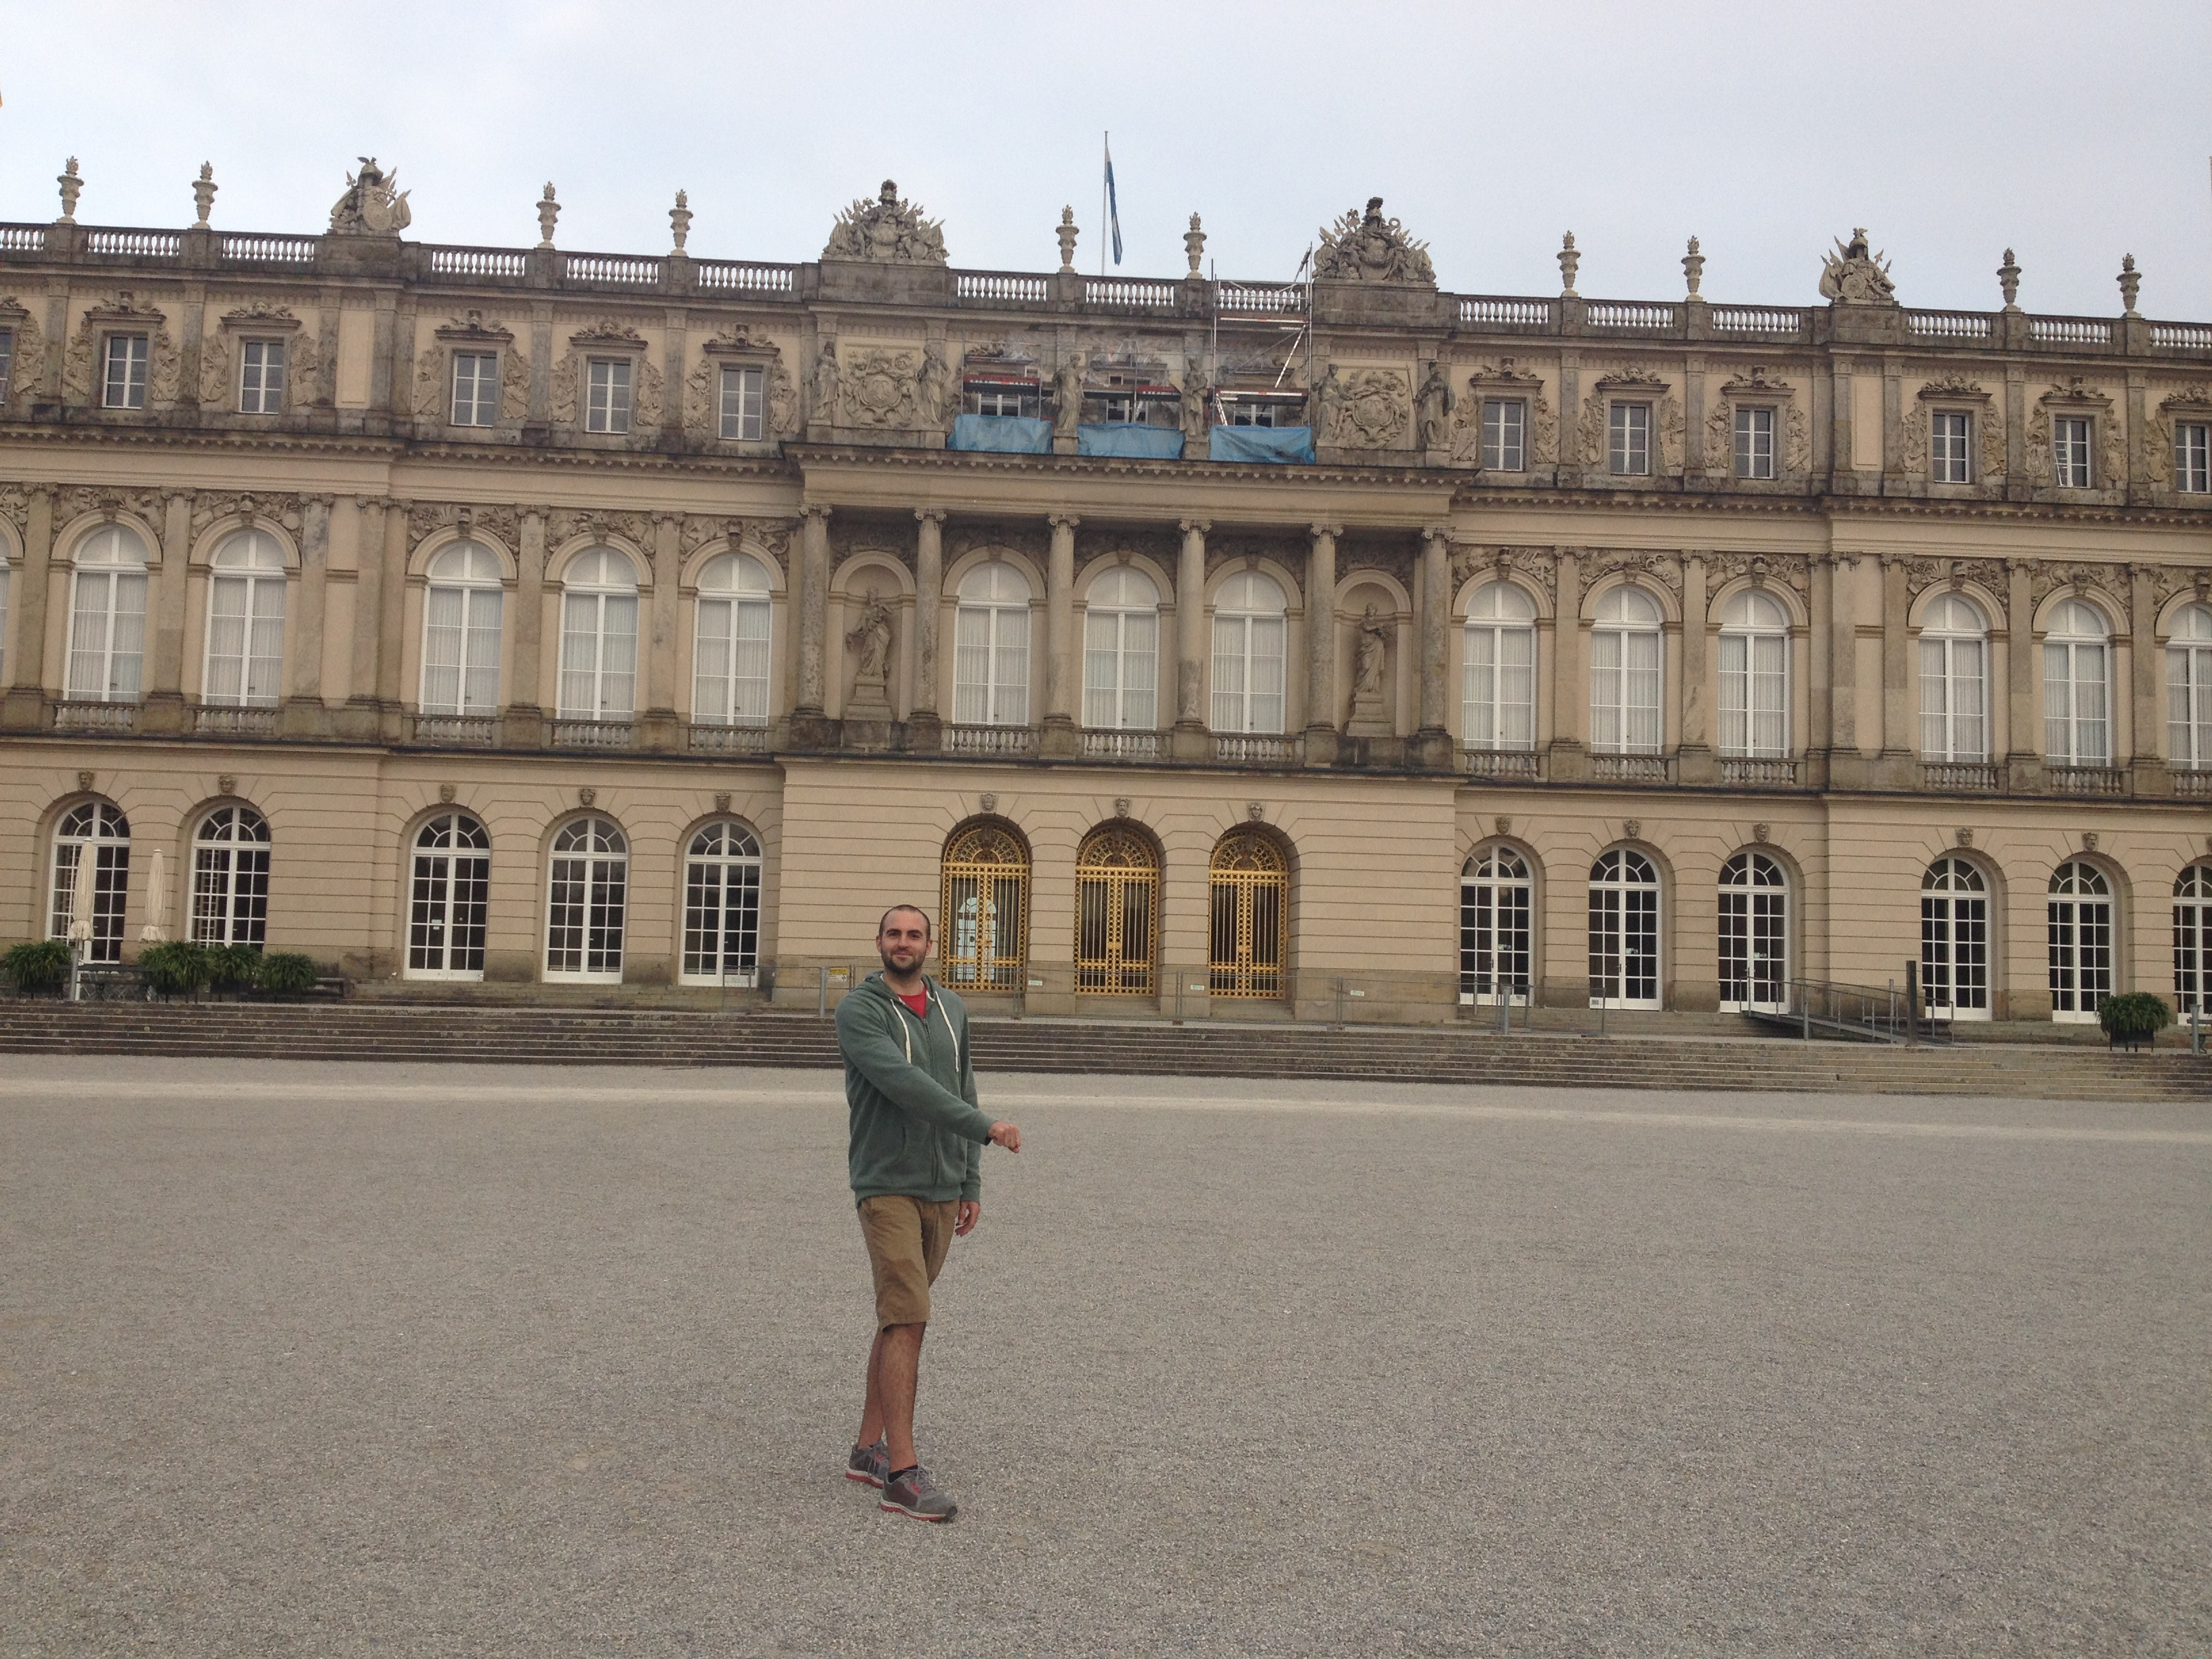 The Villain perfecting his 'king pose' at a palace outside of Munich